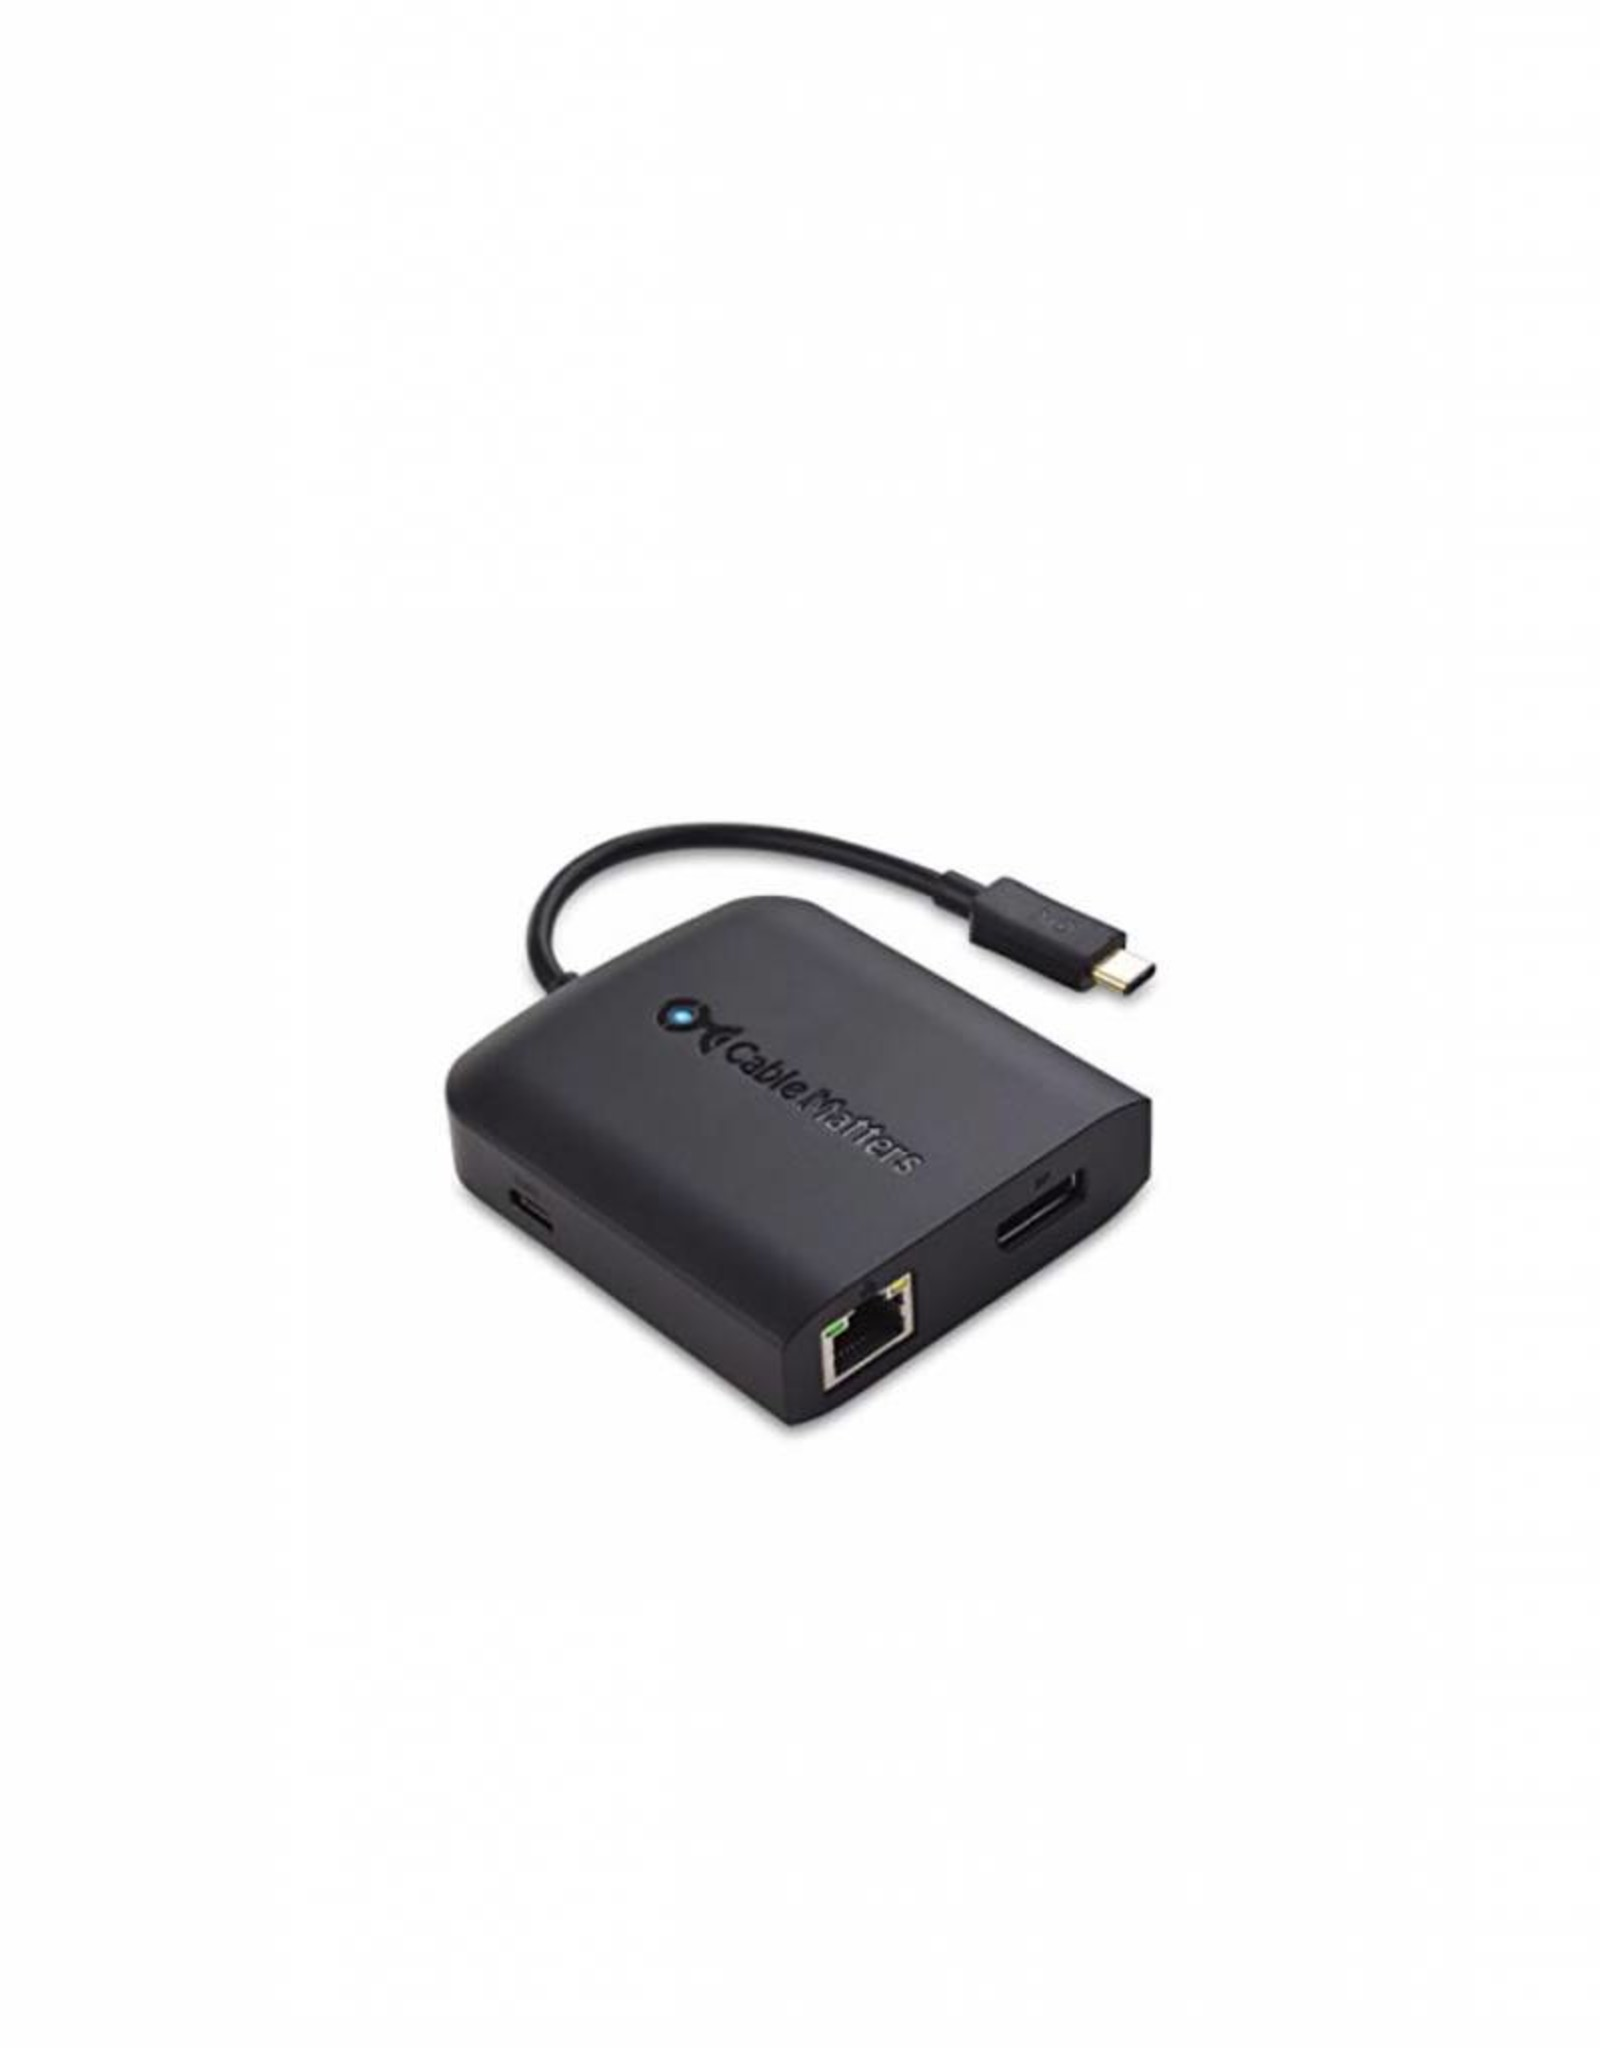 CABLE MATTERS CABLE MATTERS USB-C MULTIPORT ADAPTER (USB/ETHERNET/HDMI)